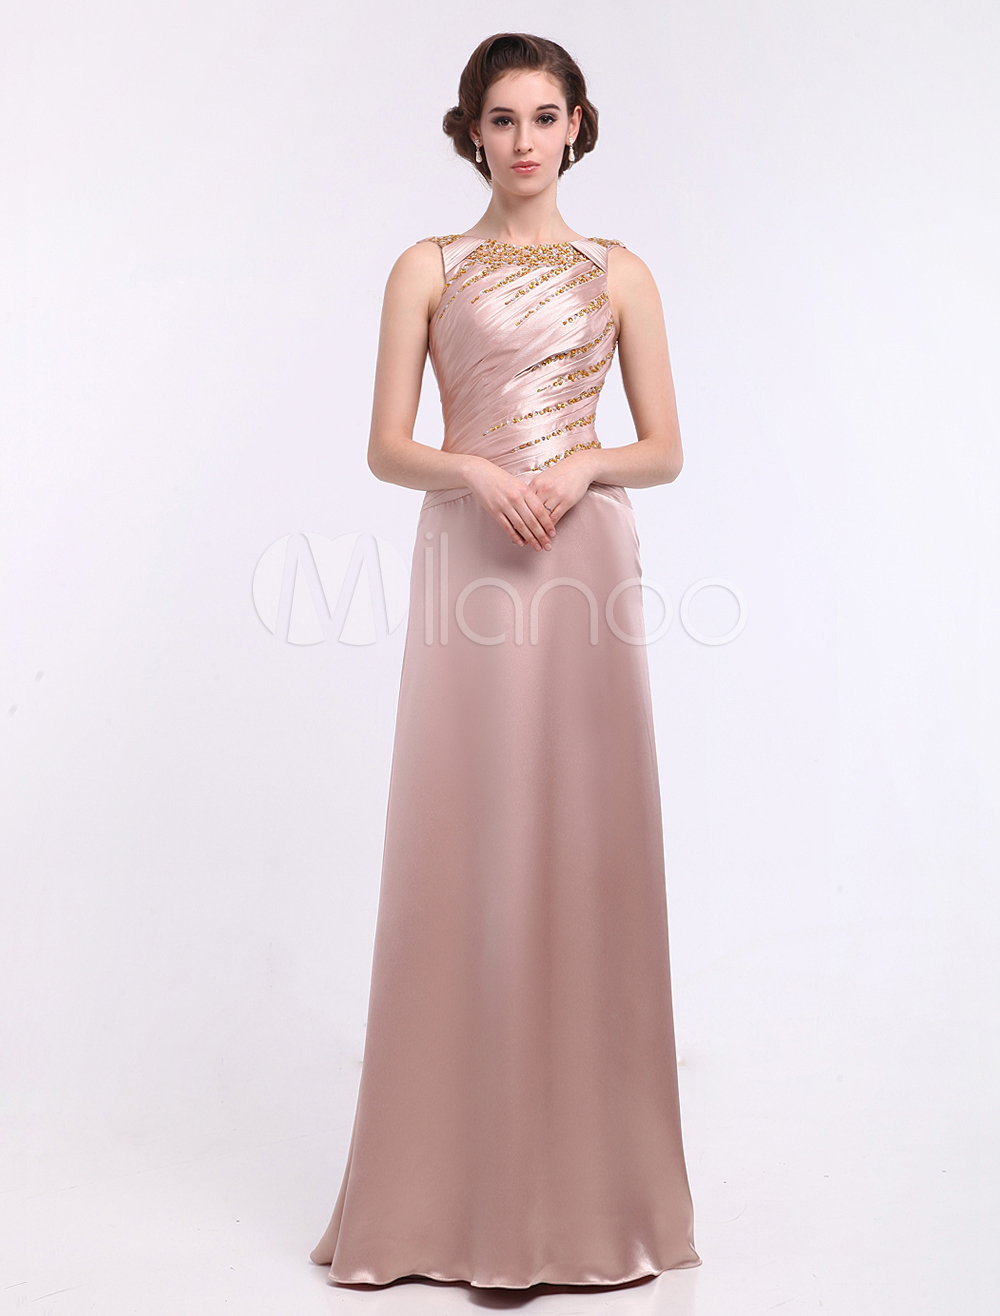 Buy Nude Sheath Jewel Neck Ruched Backless Elastic Silk Like Satin Mother of the Bride Dress Milanoo for $140.59 in Milanoo store